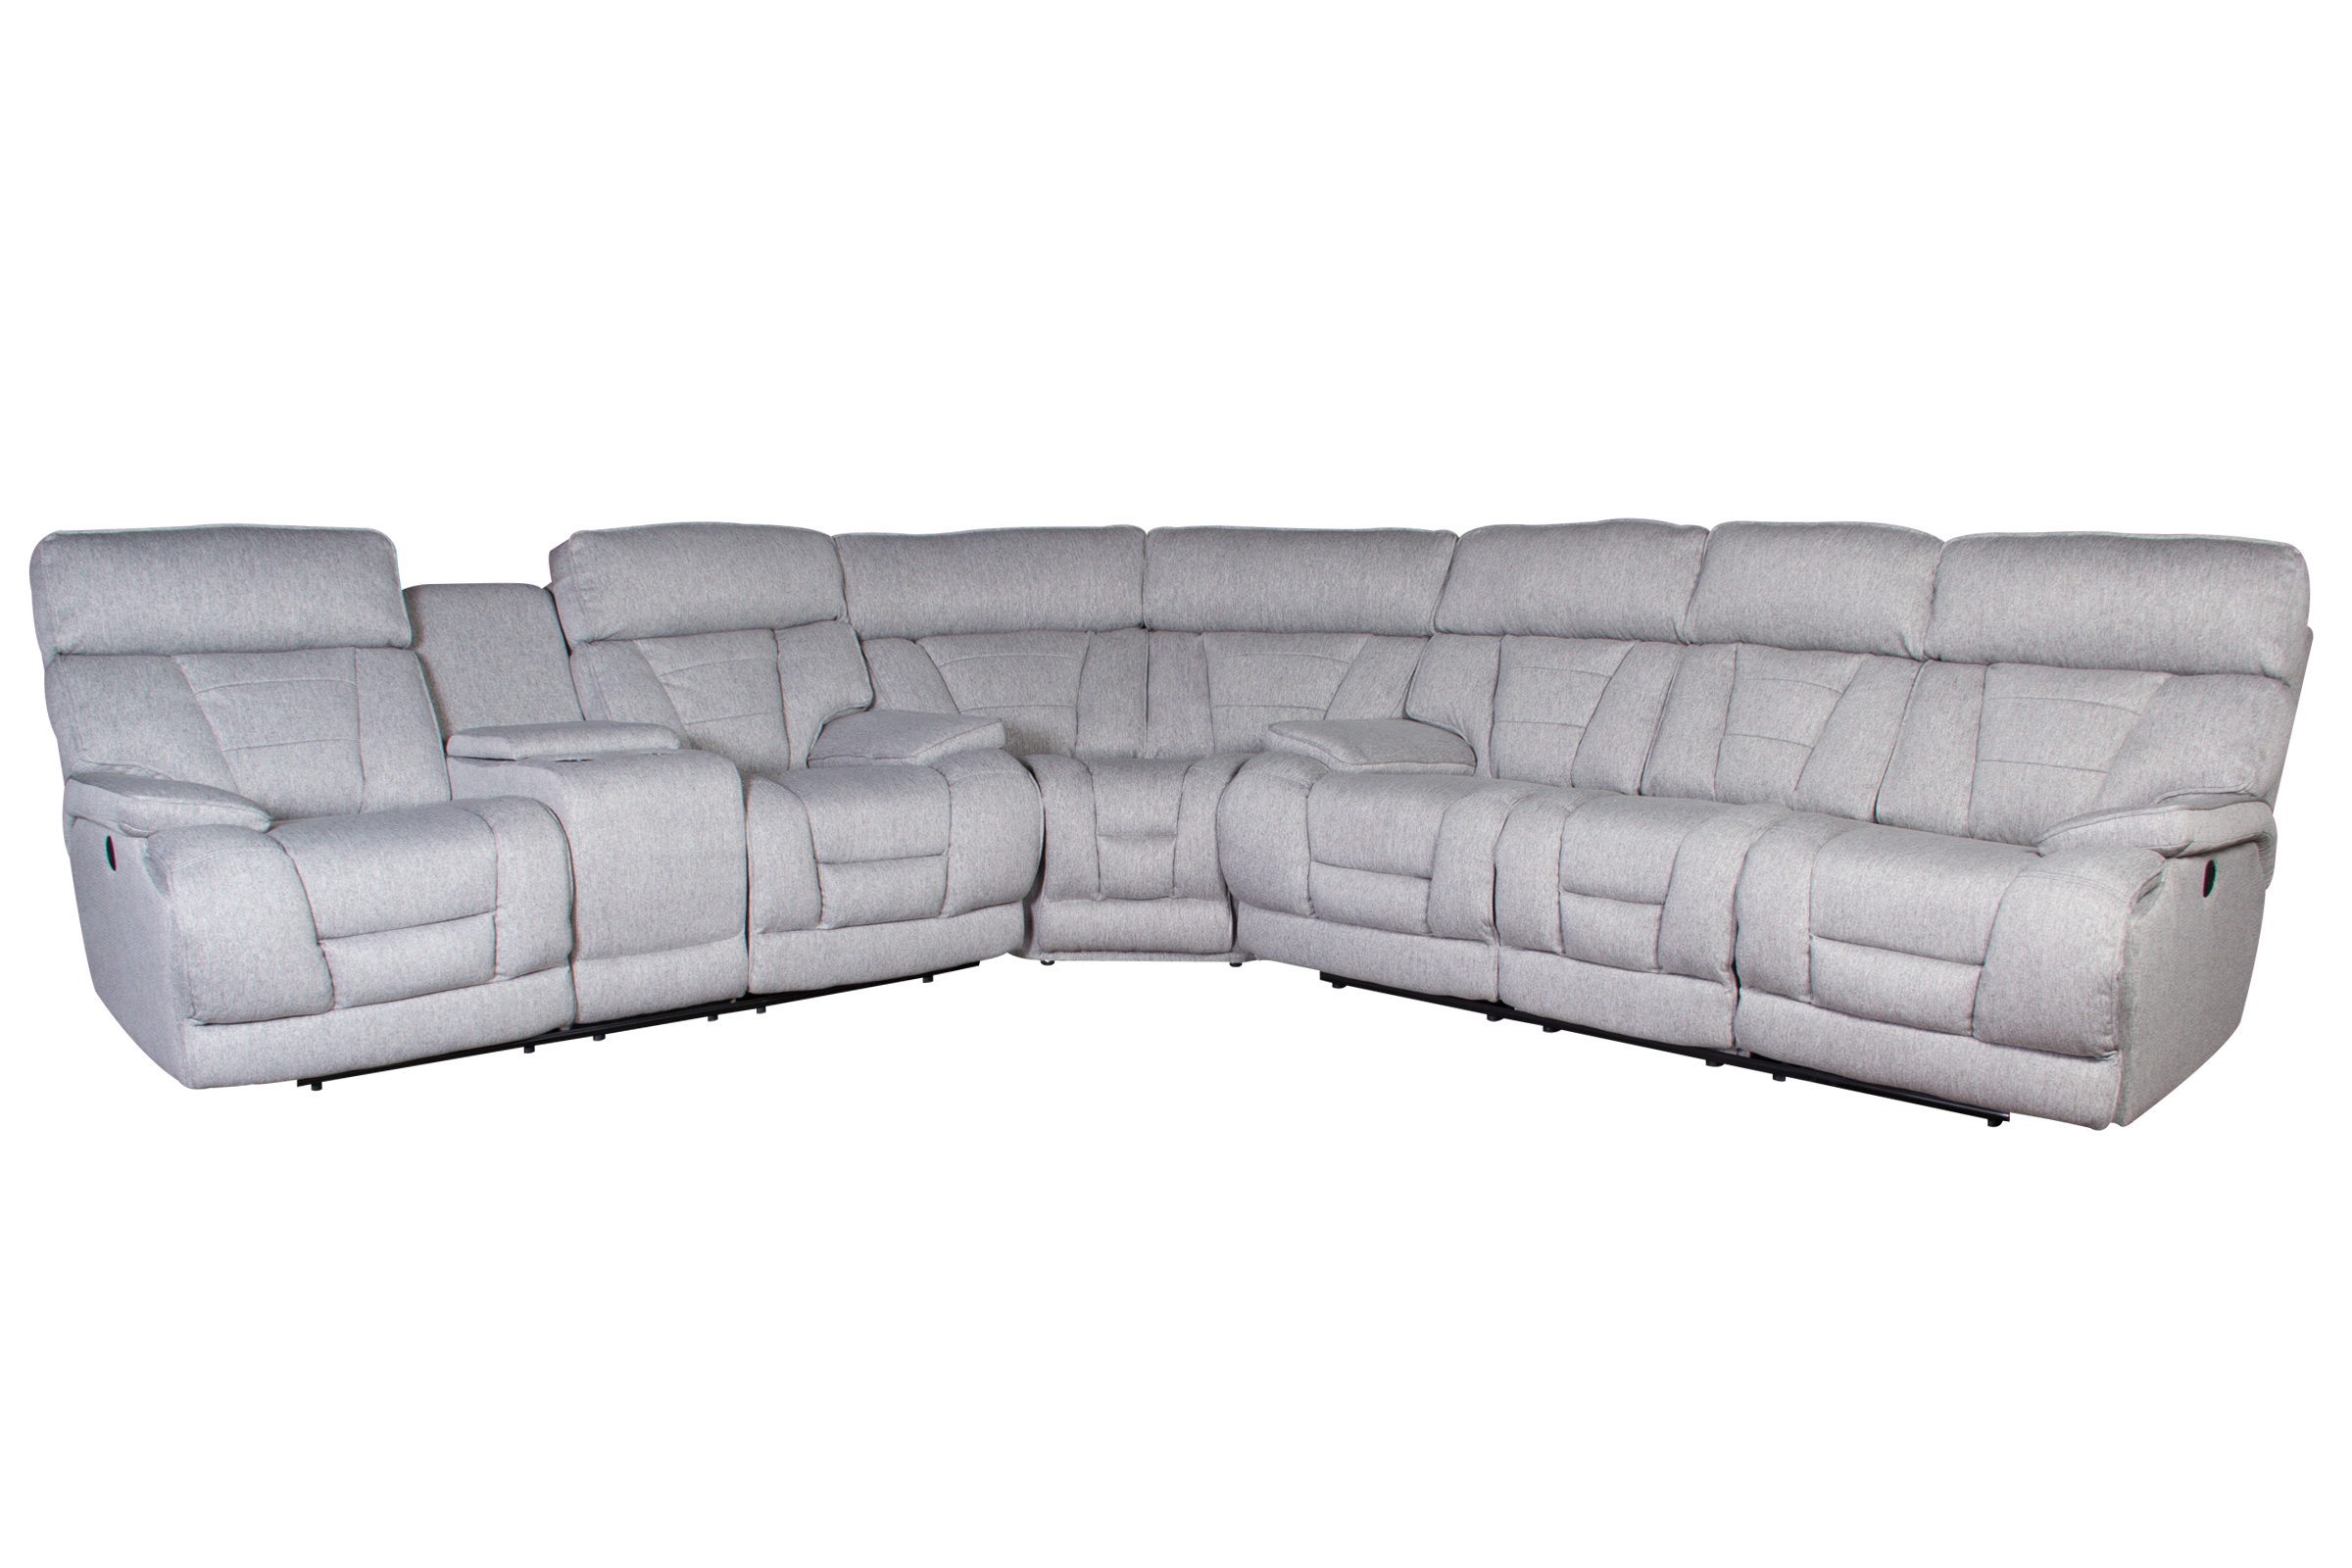 Alan White SofaChair Features Rolled Cushion Arms And  : 68126 from algarveglobal.com size 2400 x 1600 jpeg 545kB